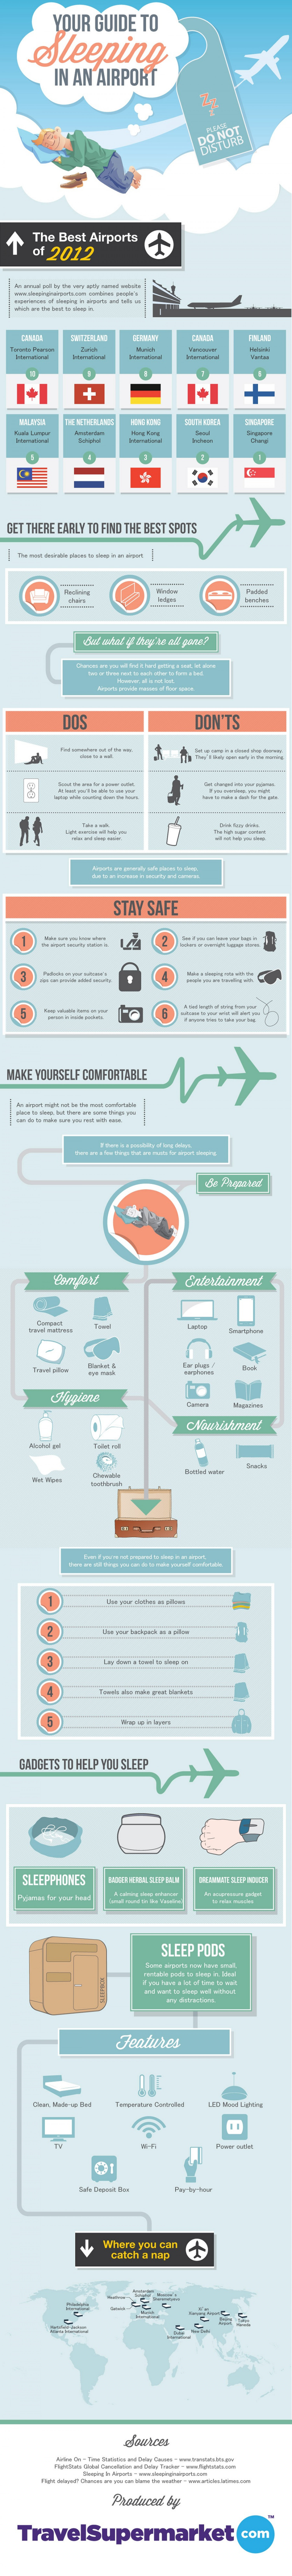 Your guide to sleeping in an airport Infographic